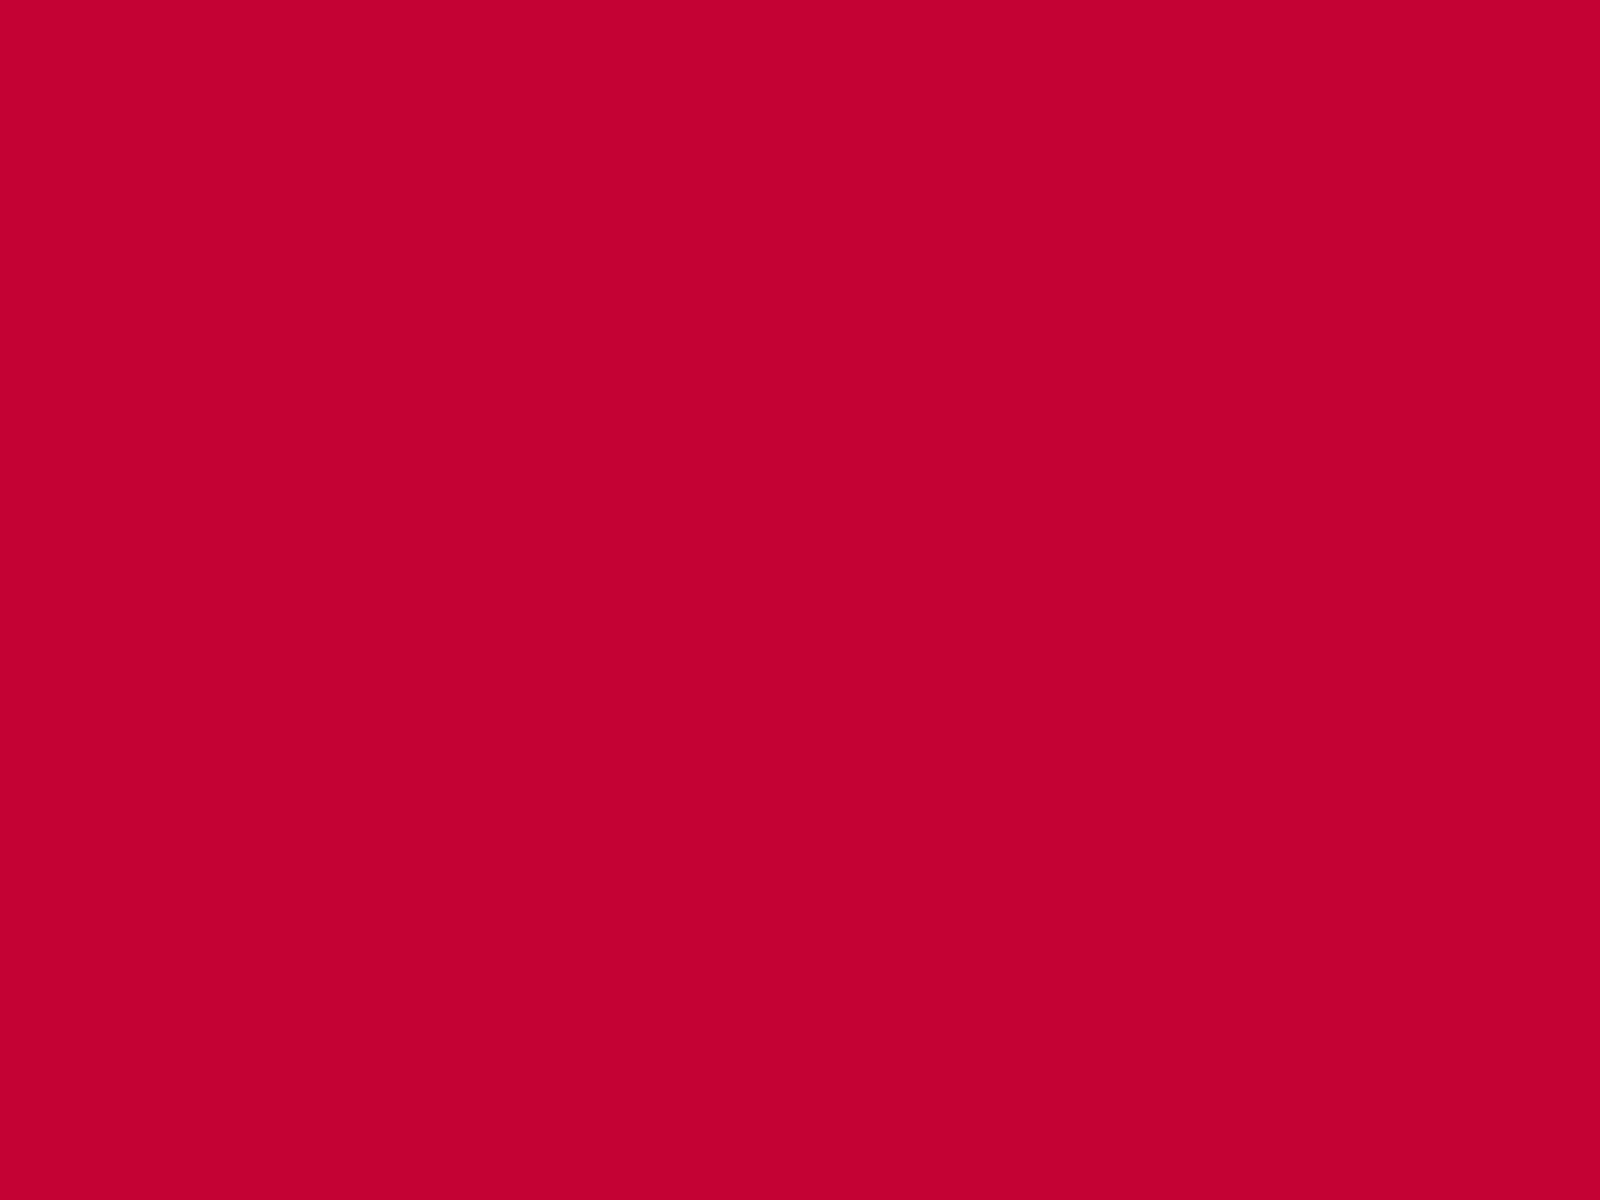 1600x1200 Red NCS Solid Color Background